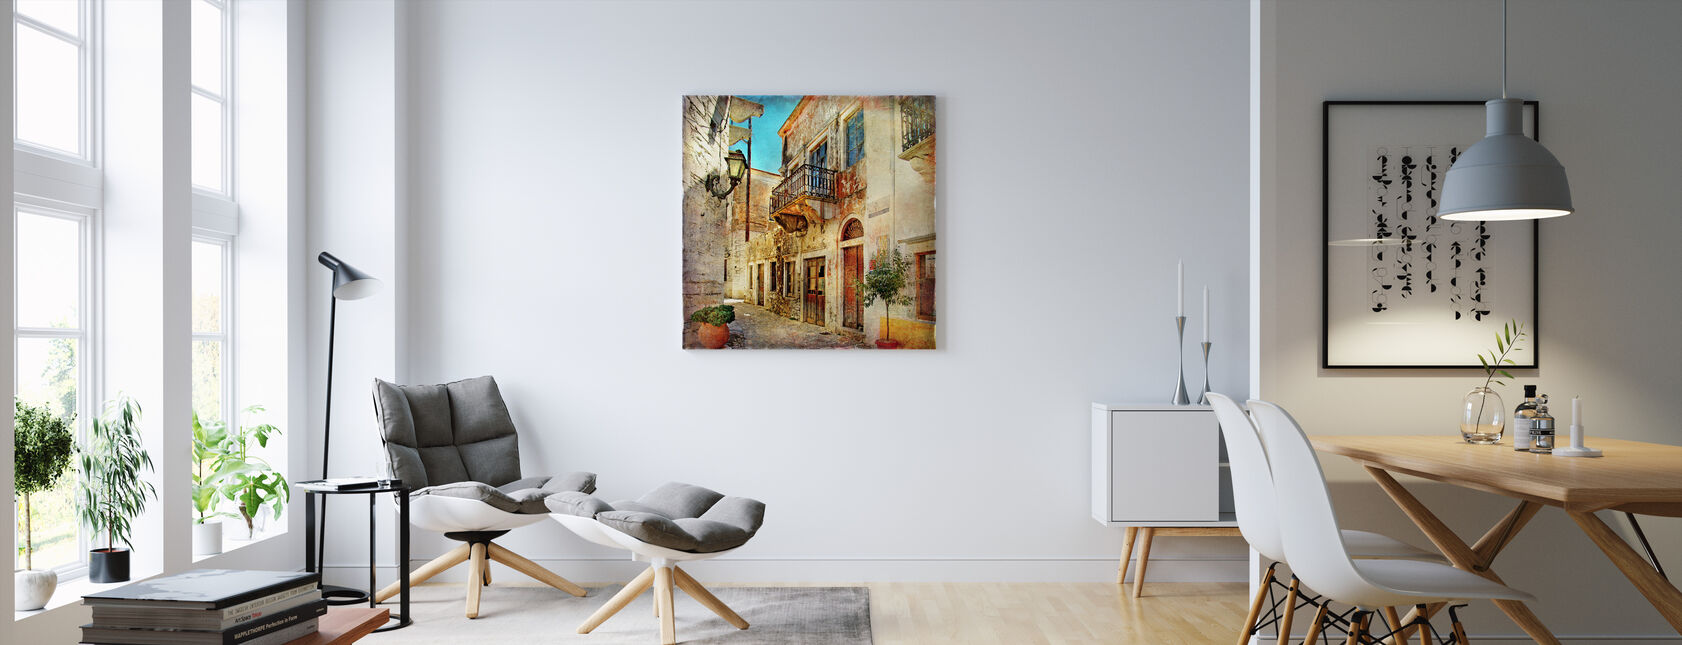 Old Street of Greece - Canvas print - Living Room